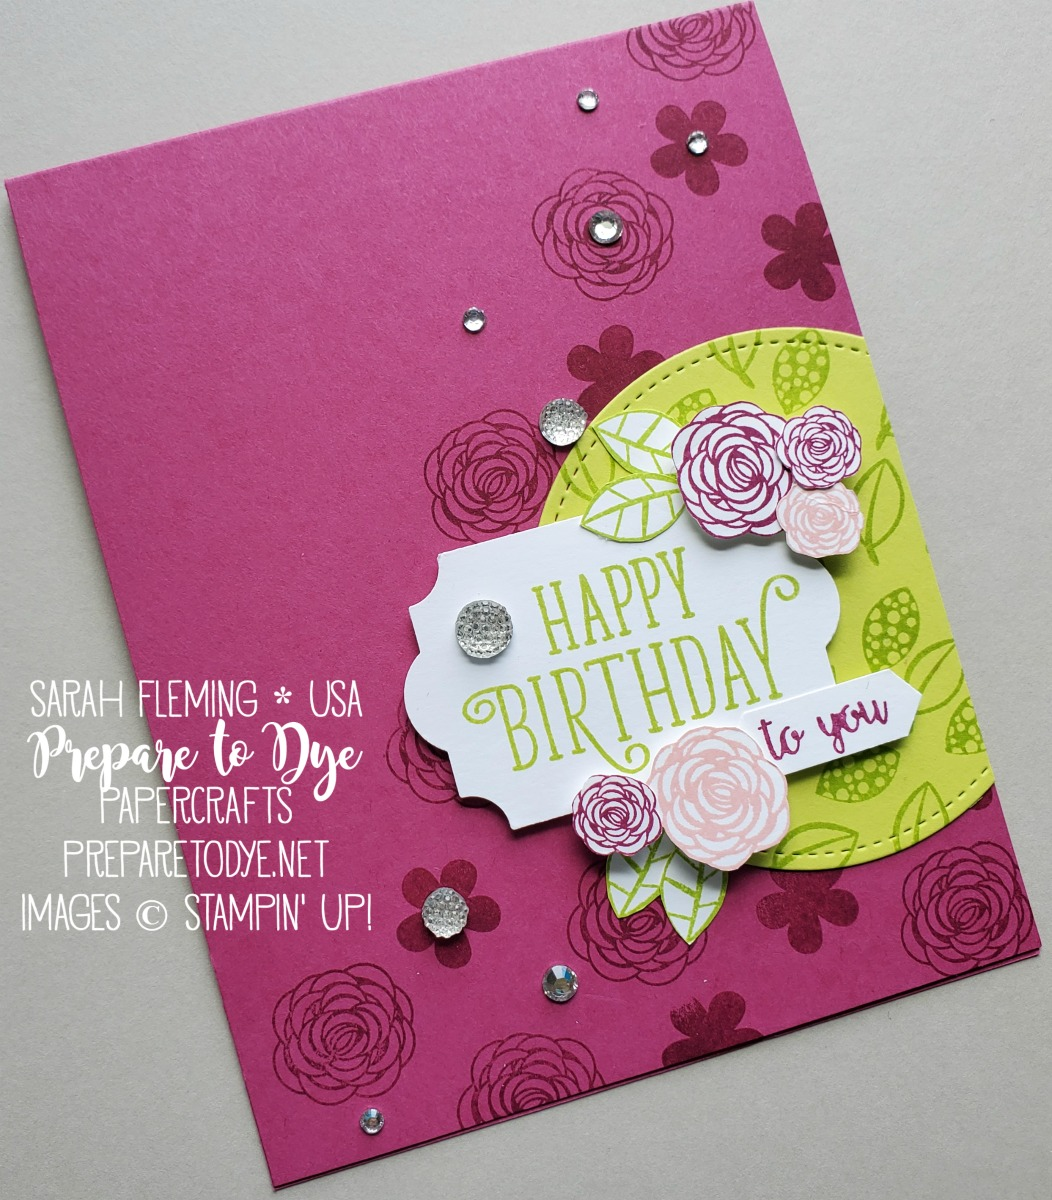 Stampin' Up! handmade birthday card using Happy Birthday Gorgeous stamp set - retiring soon - Everyday Label Punch, Stitched Shapes dies, Clear Faceted Gems - Sarah Fleming - Third Thursdays Blog Hop - Prepare to Dye Papercrafts